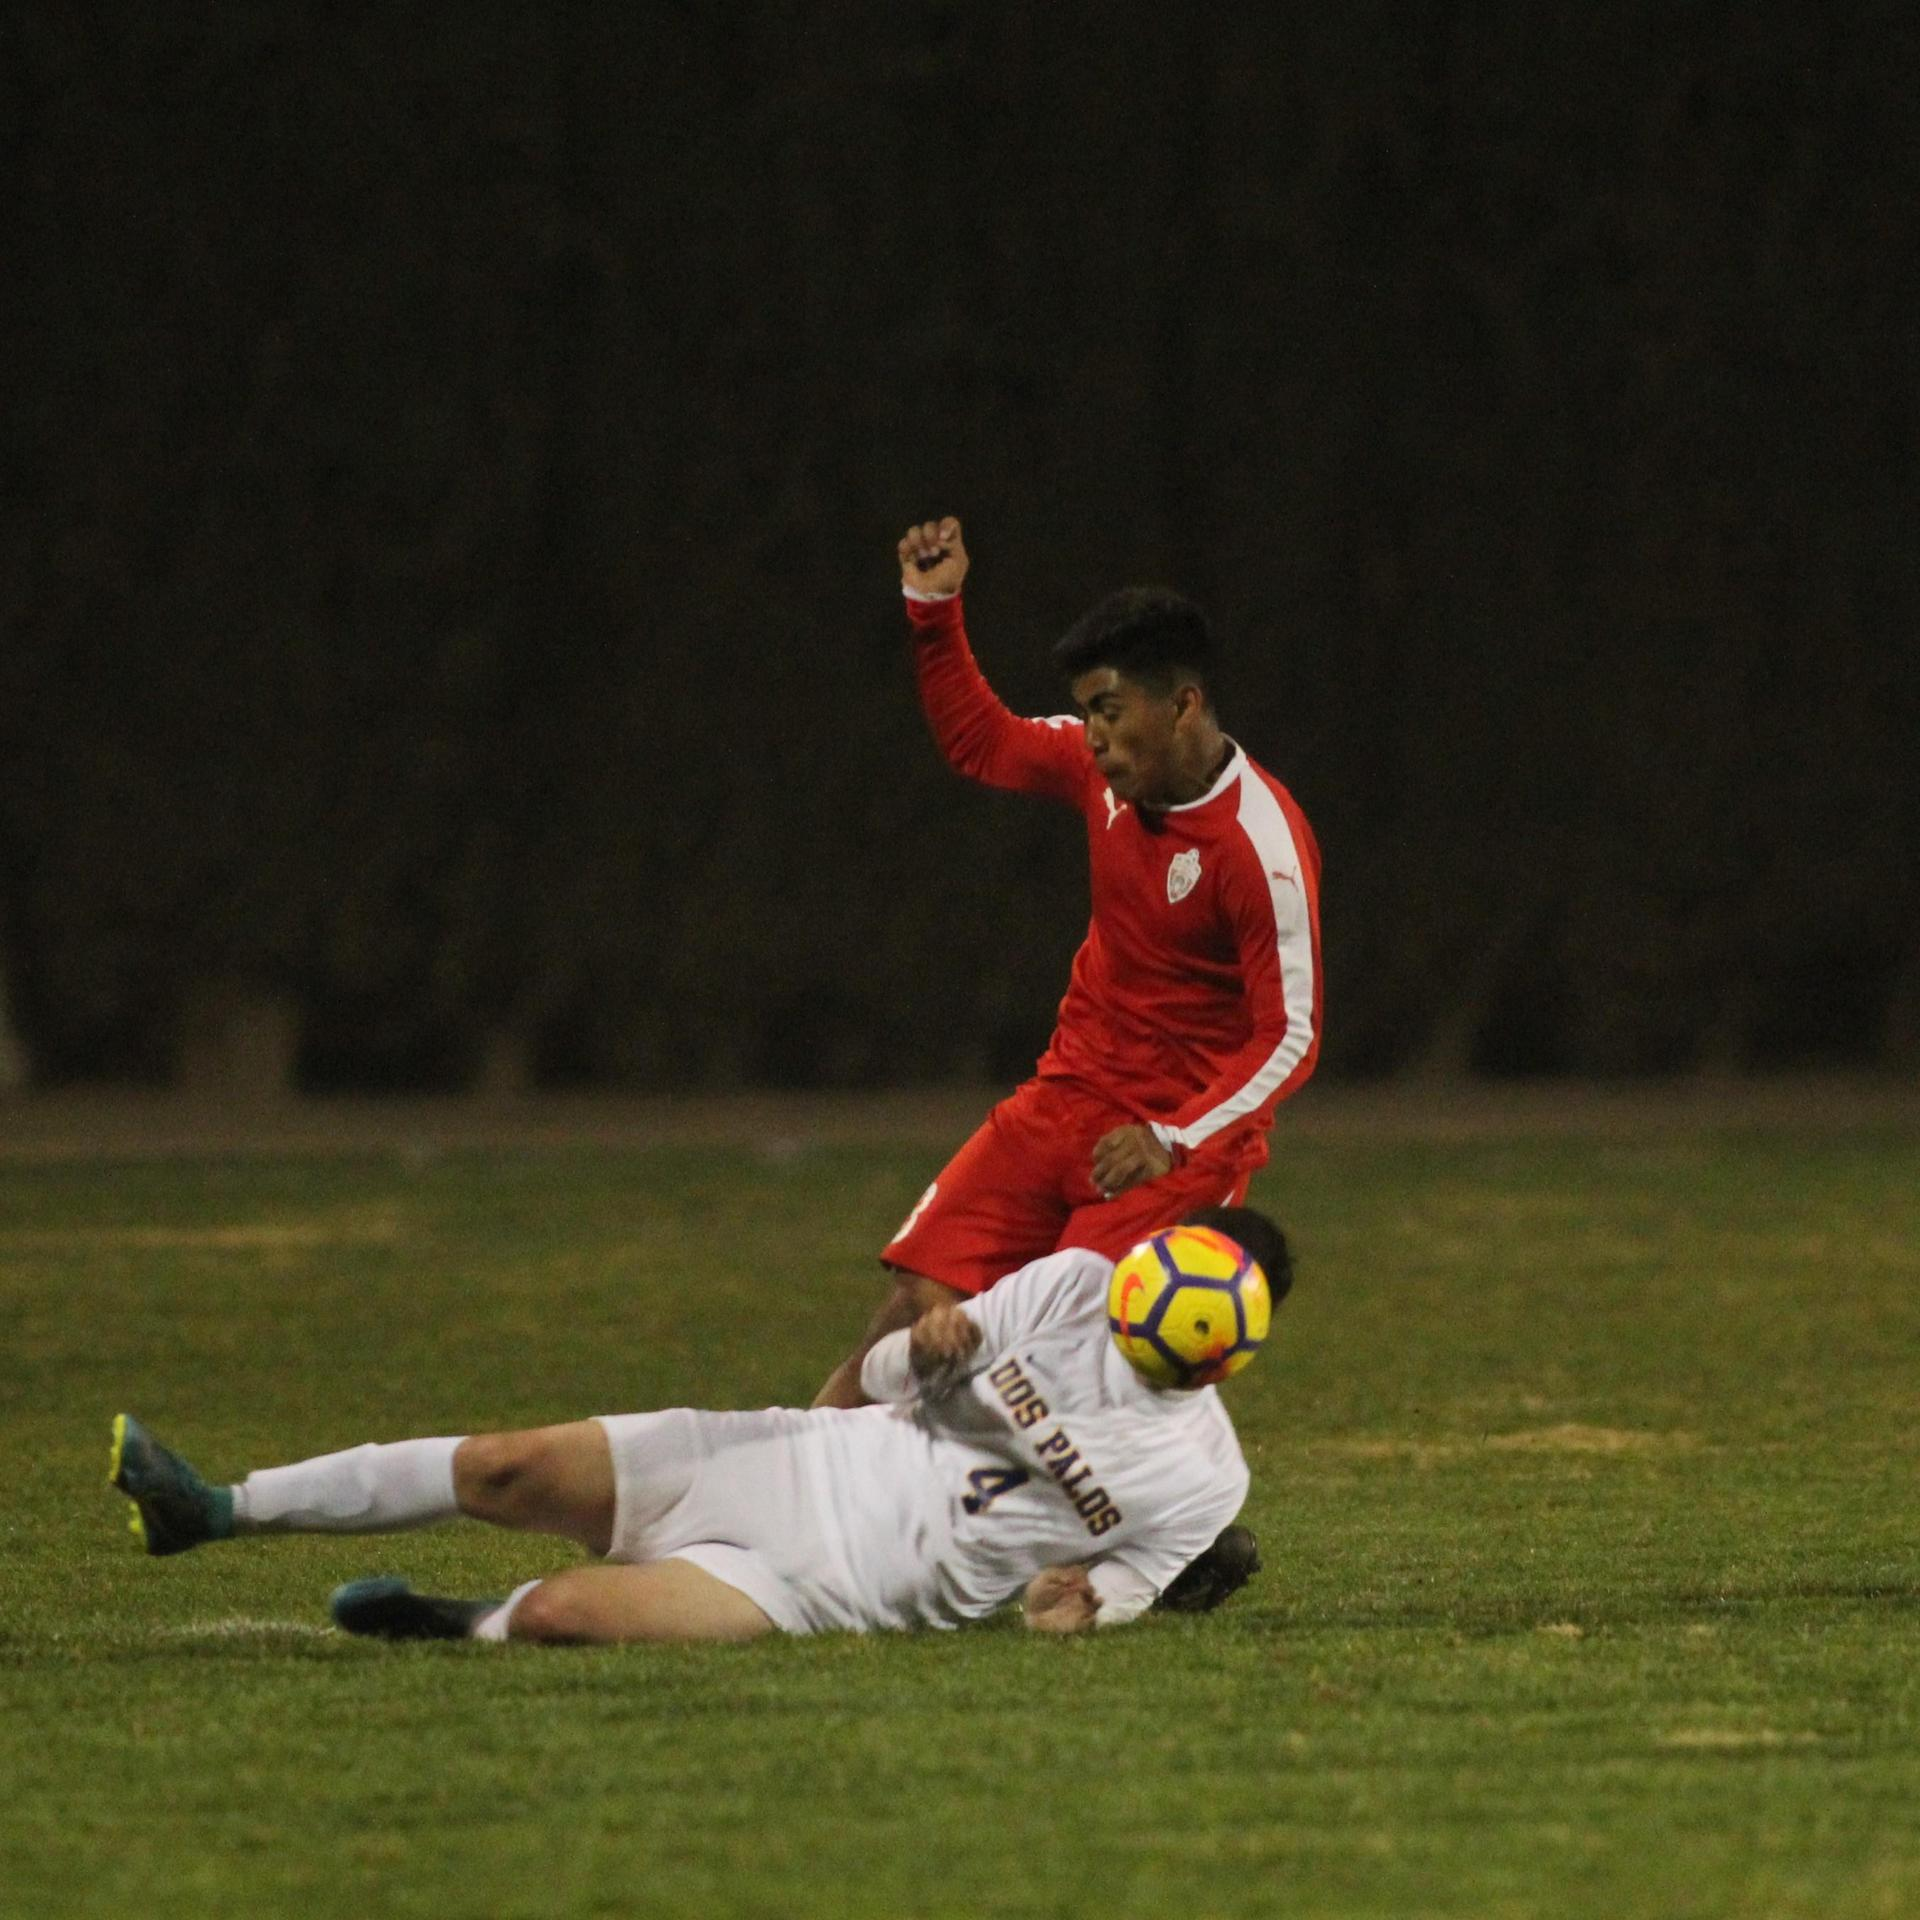 Alejandro Montes Getting the Ball Taken from Him